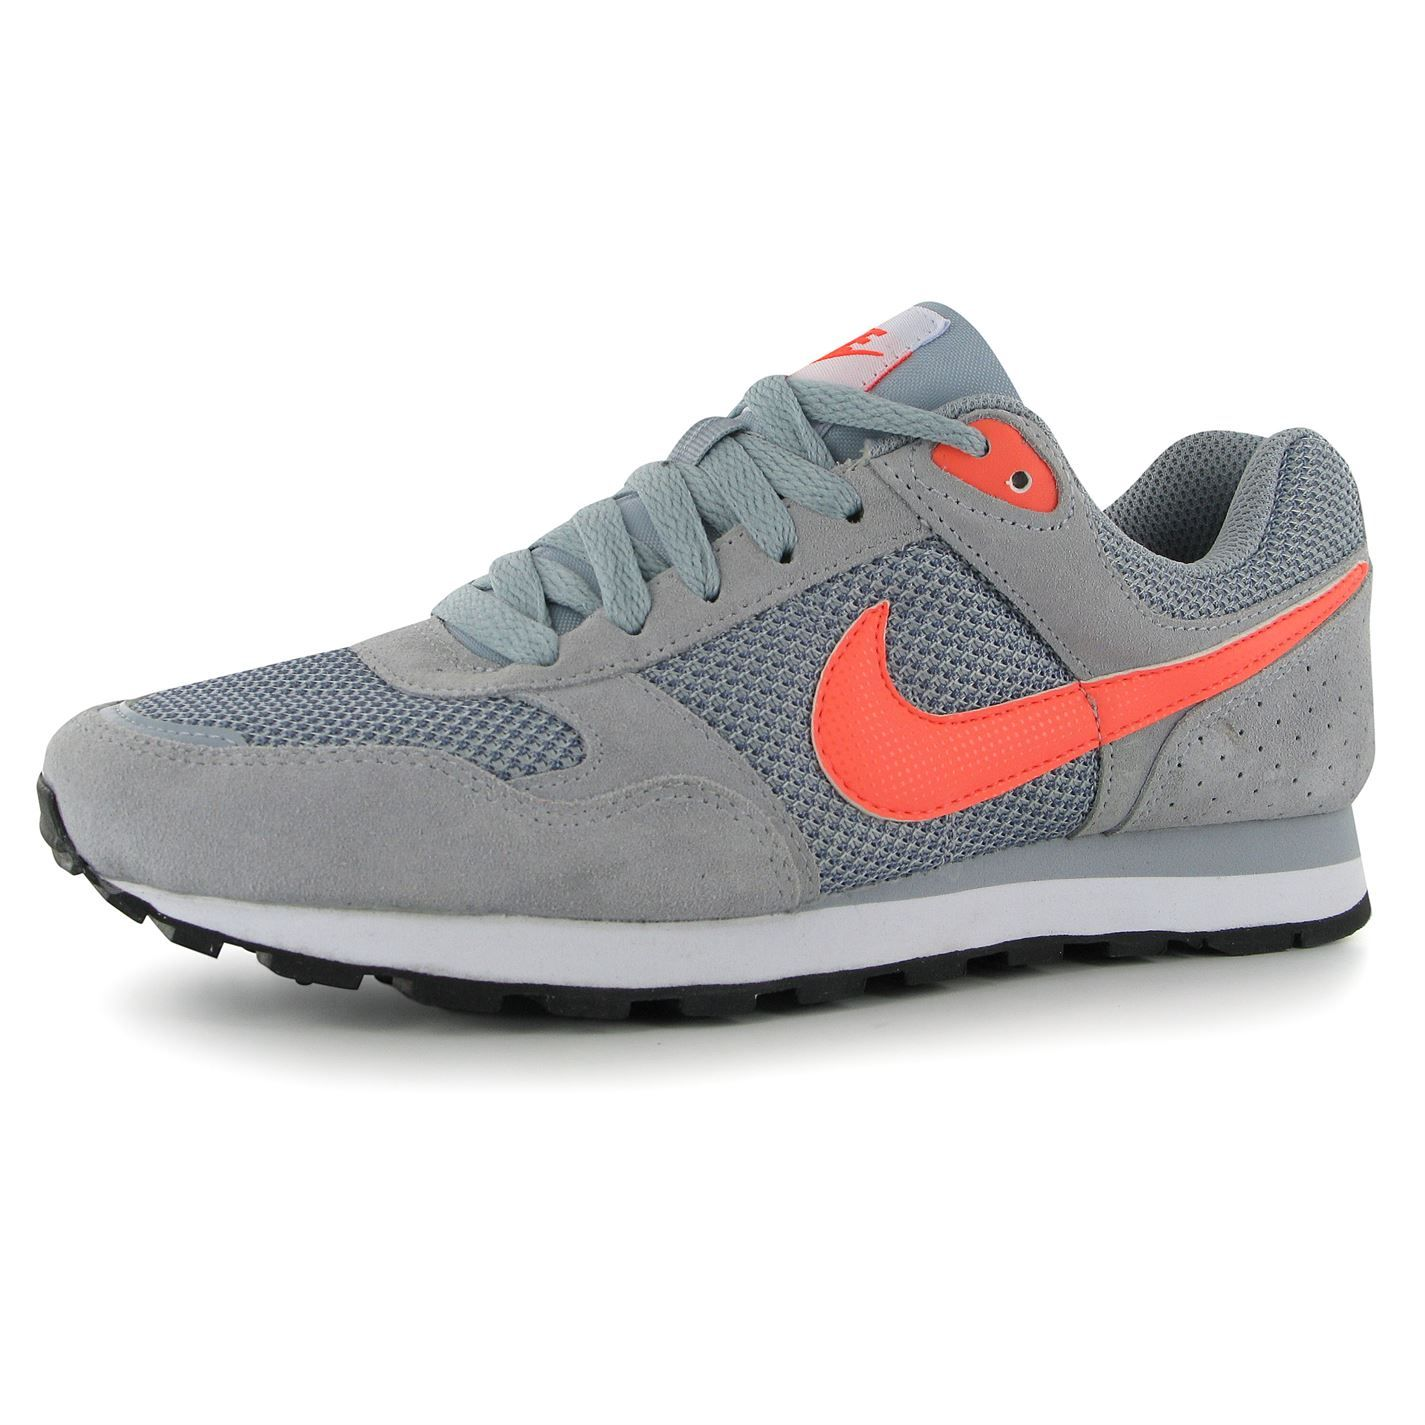 Men Shoes - Nike MD Runner Suede Running Shoes Grey/White/Volt